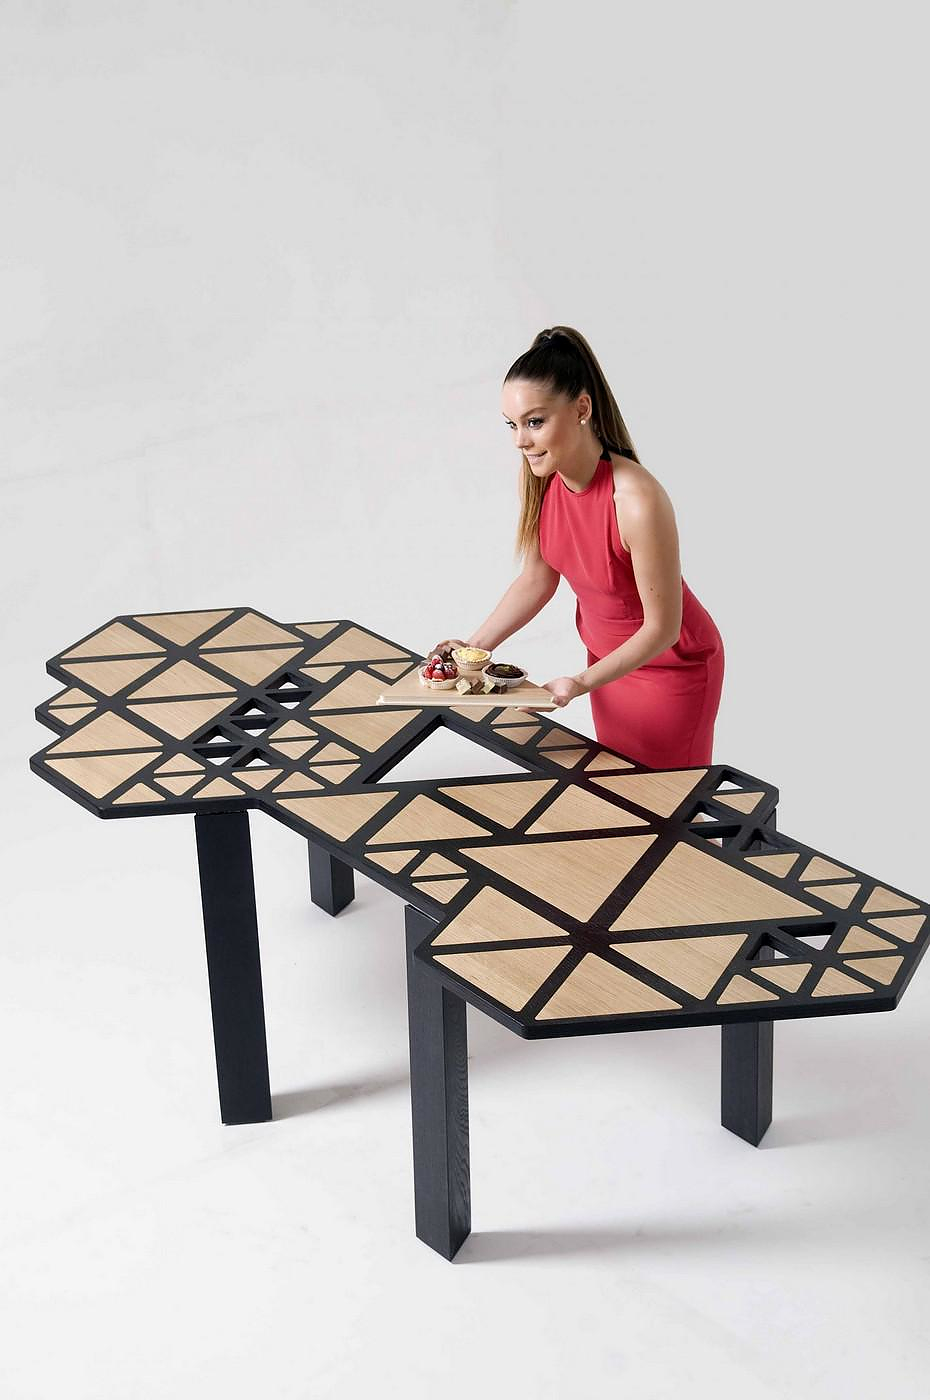 Swarm Transforming Table by Natalie Goldfinger.